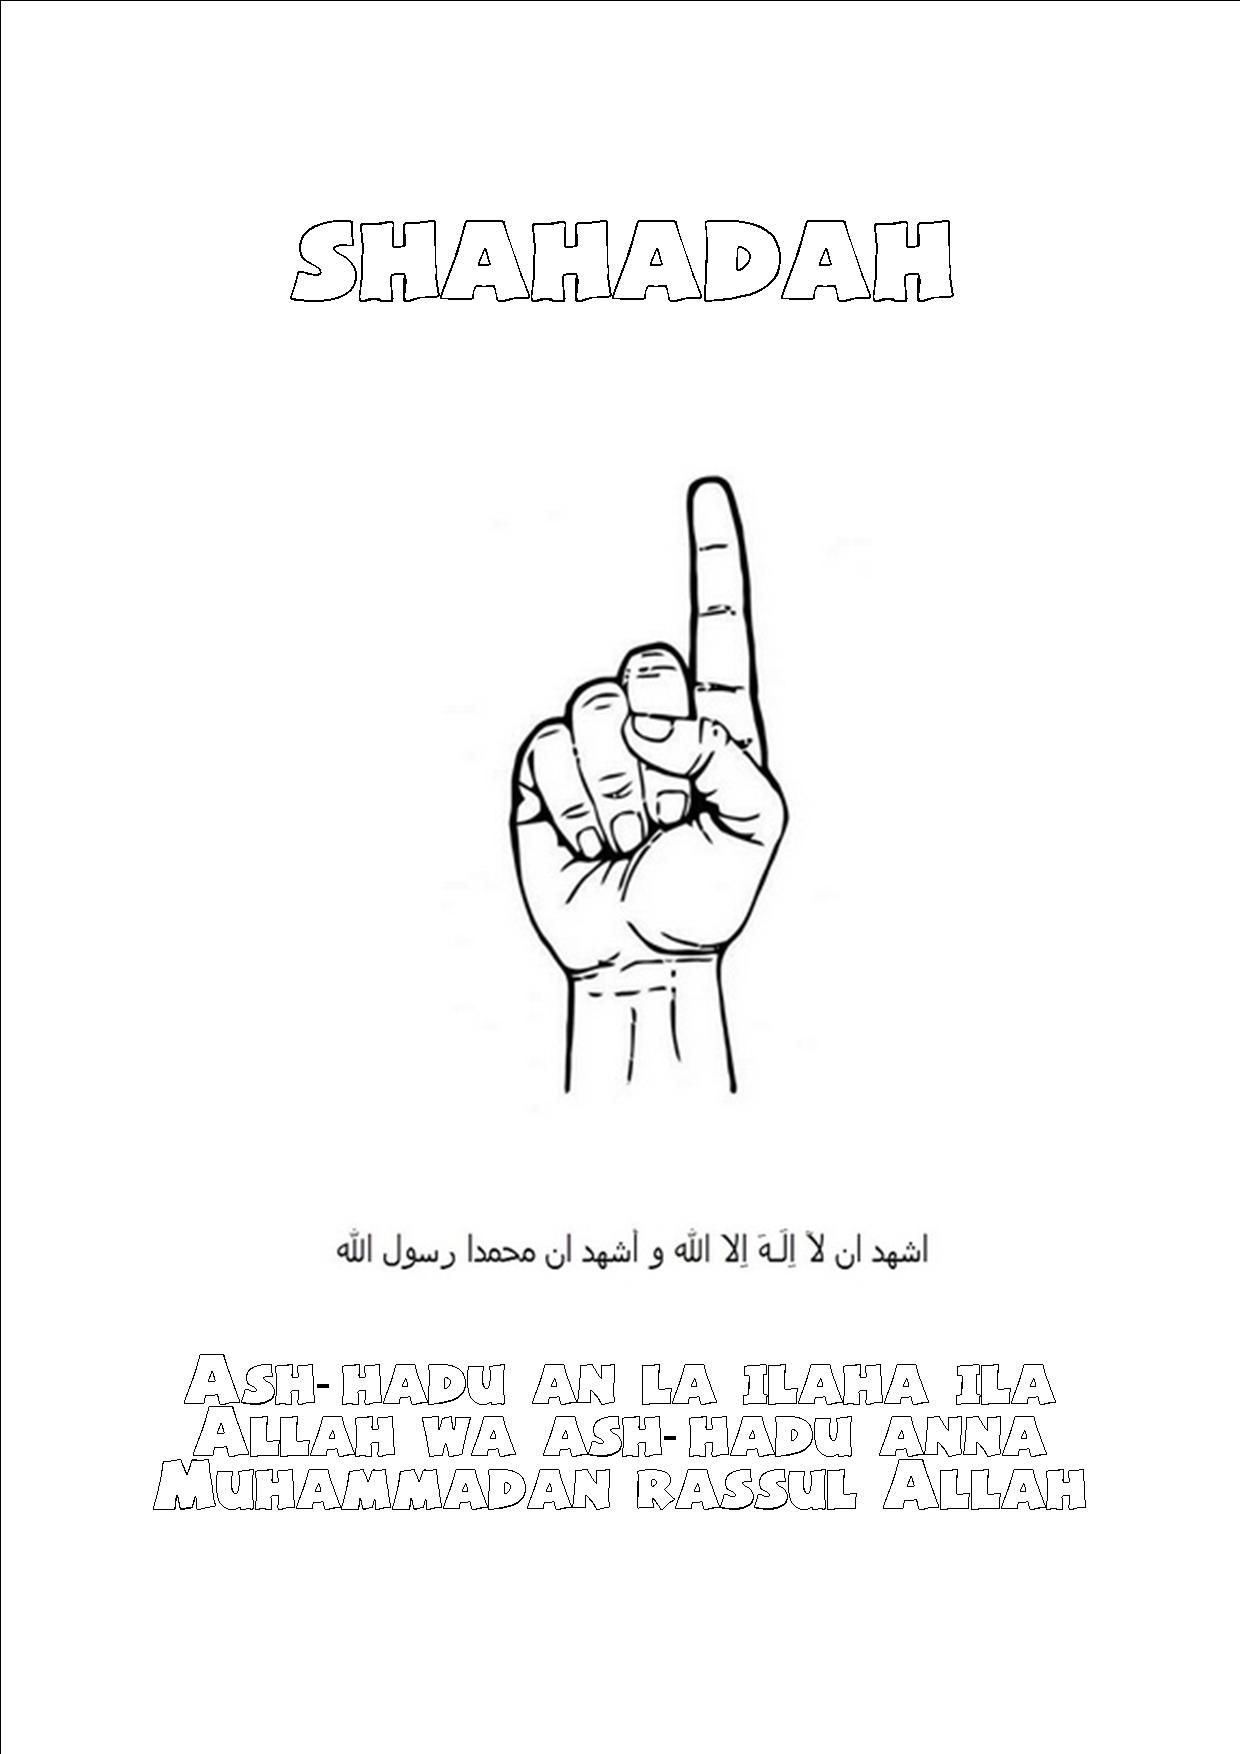 Shahadah Colouring Sheet